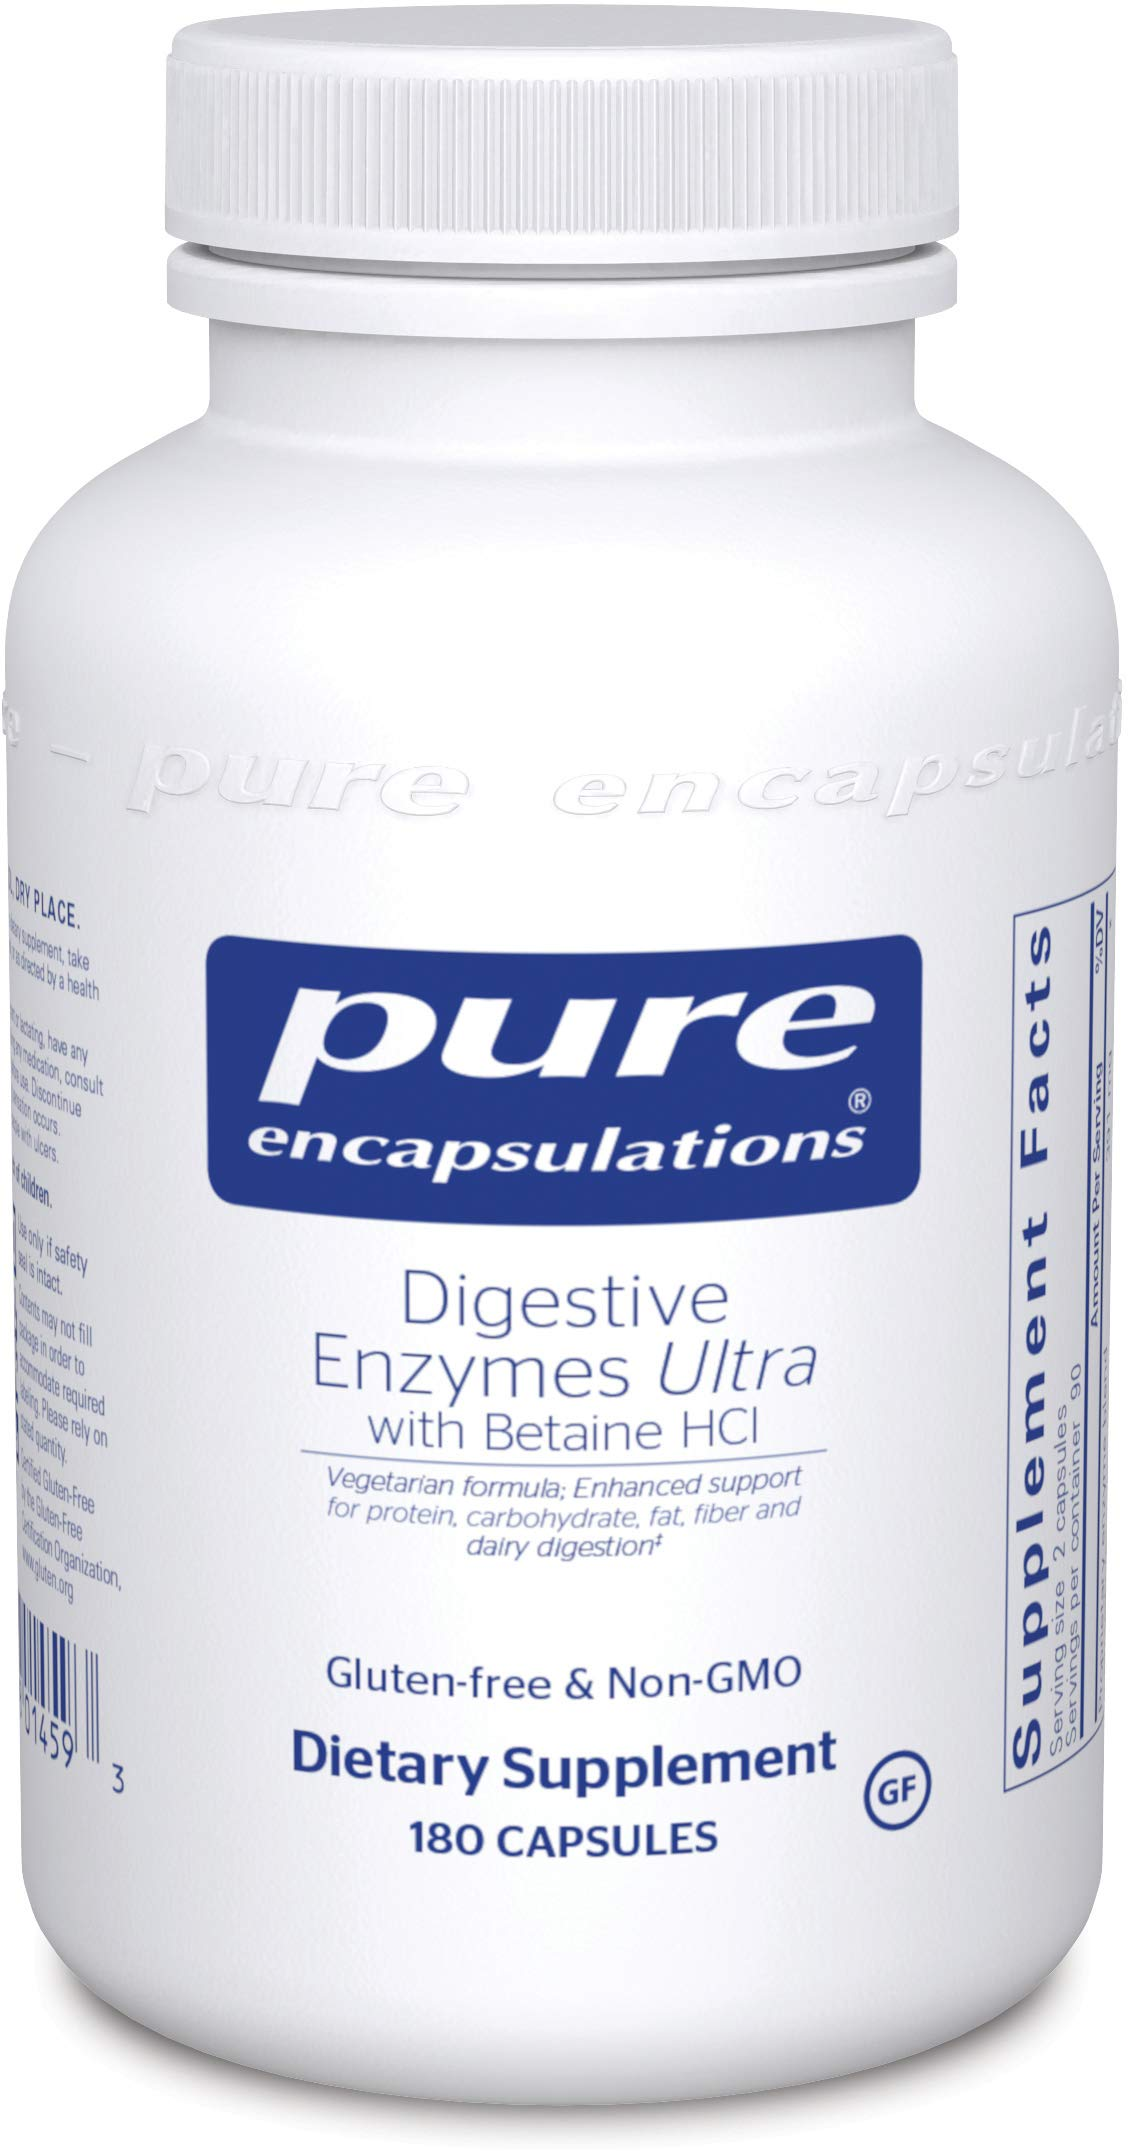 Pure Encapsulations - Digestive Enzymes Ultra with Betaine HCl - Comprehensive Blend of Digestive Enzymes with Betaine HCl - 180 Capsules